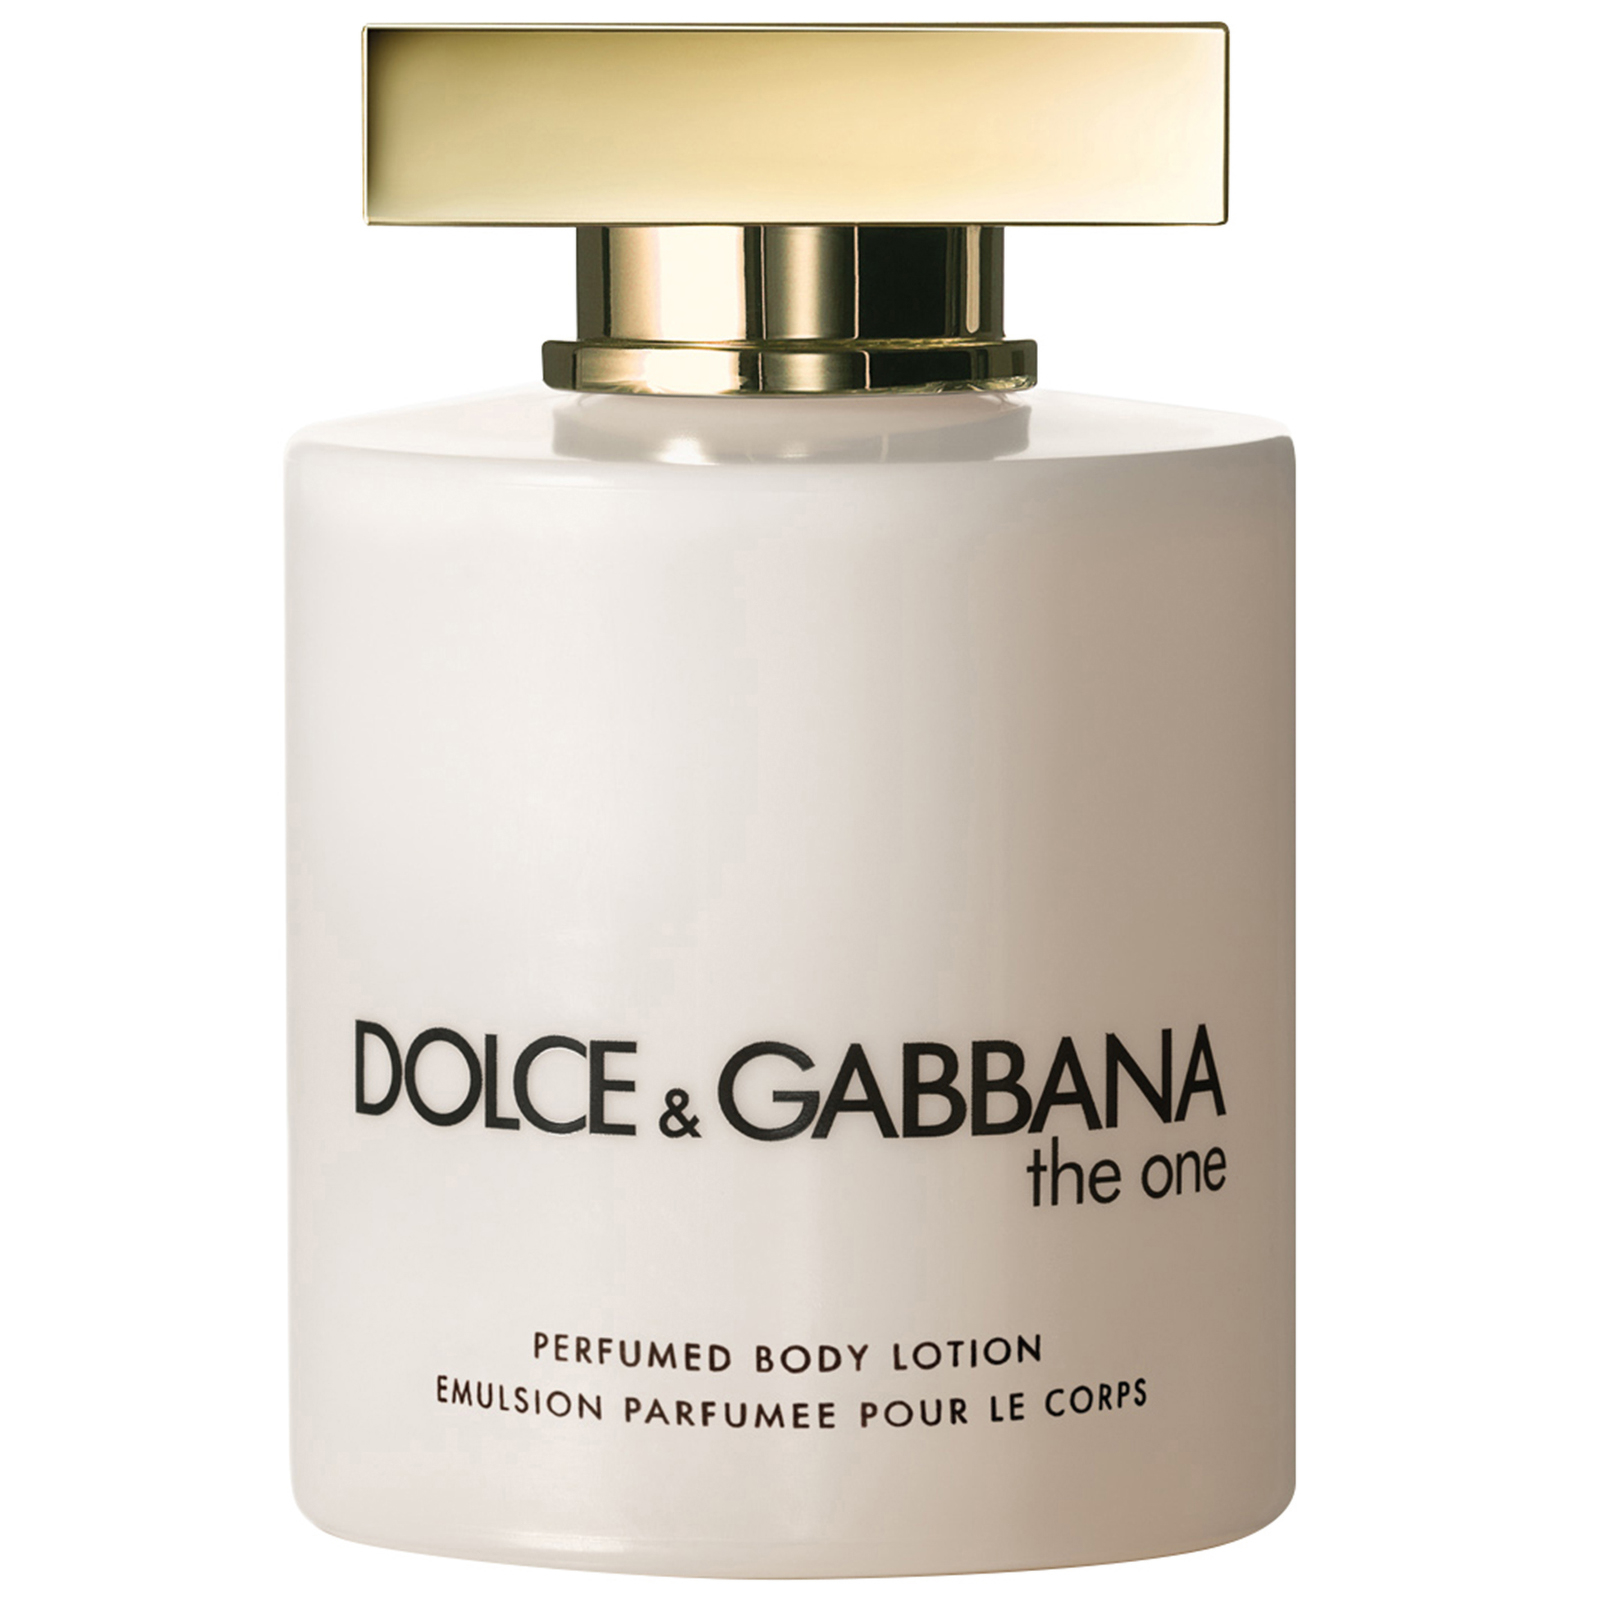 DOLCE & GABBANA The One Perfumed Body Lotion 200ml